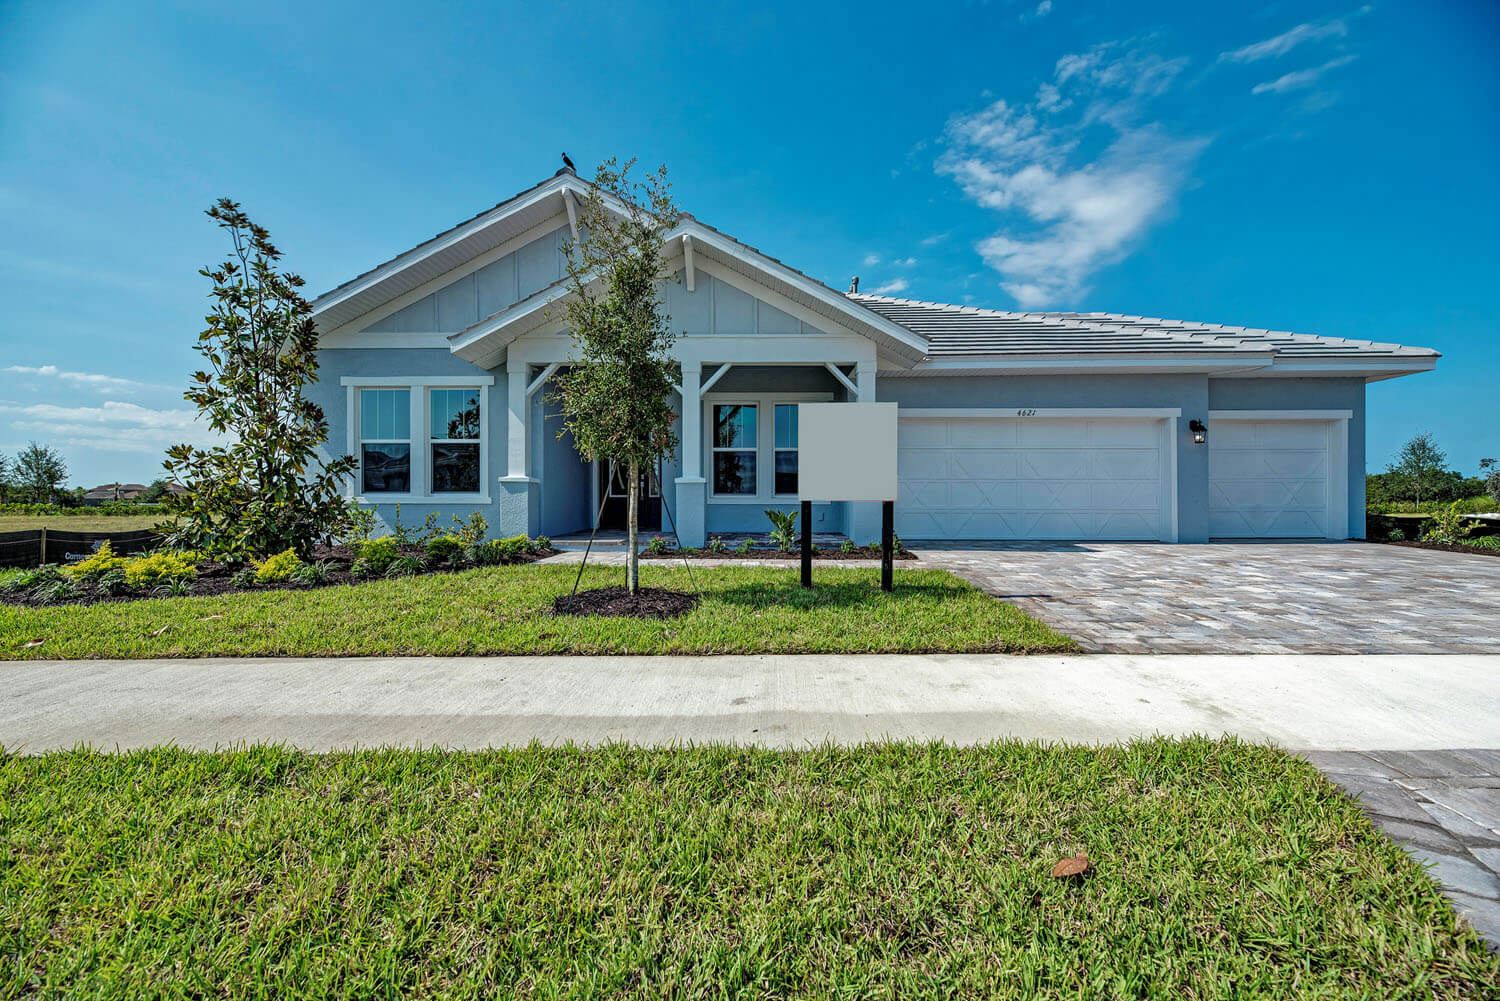 New Tampa Single Family Home Quick Possession Barrett in Worthington, located at 4621 Antrim Drive Built By Cardel Homes